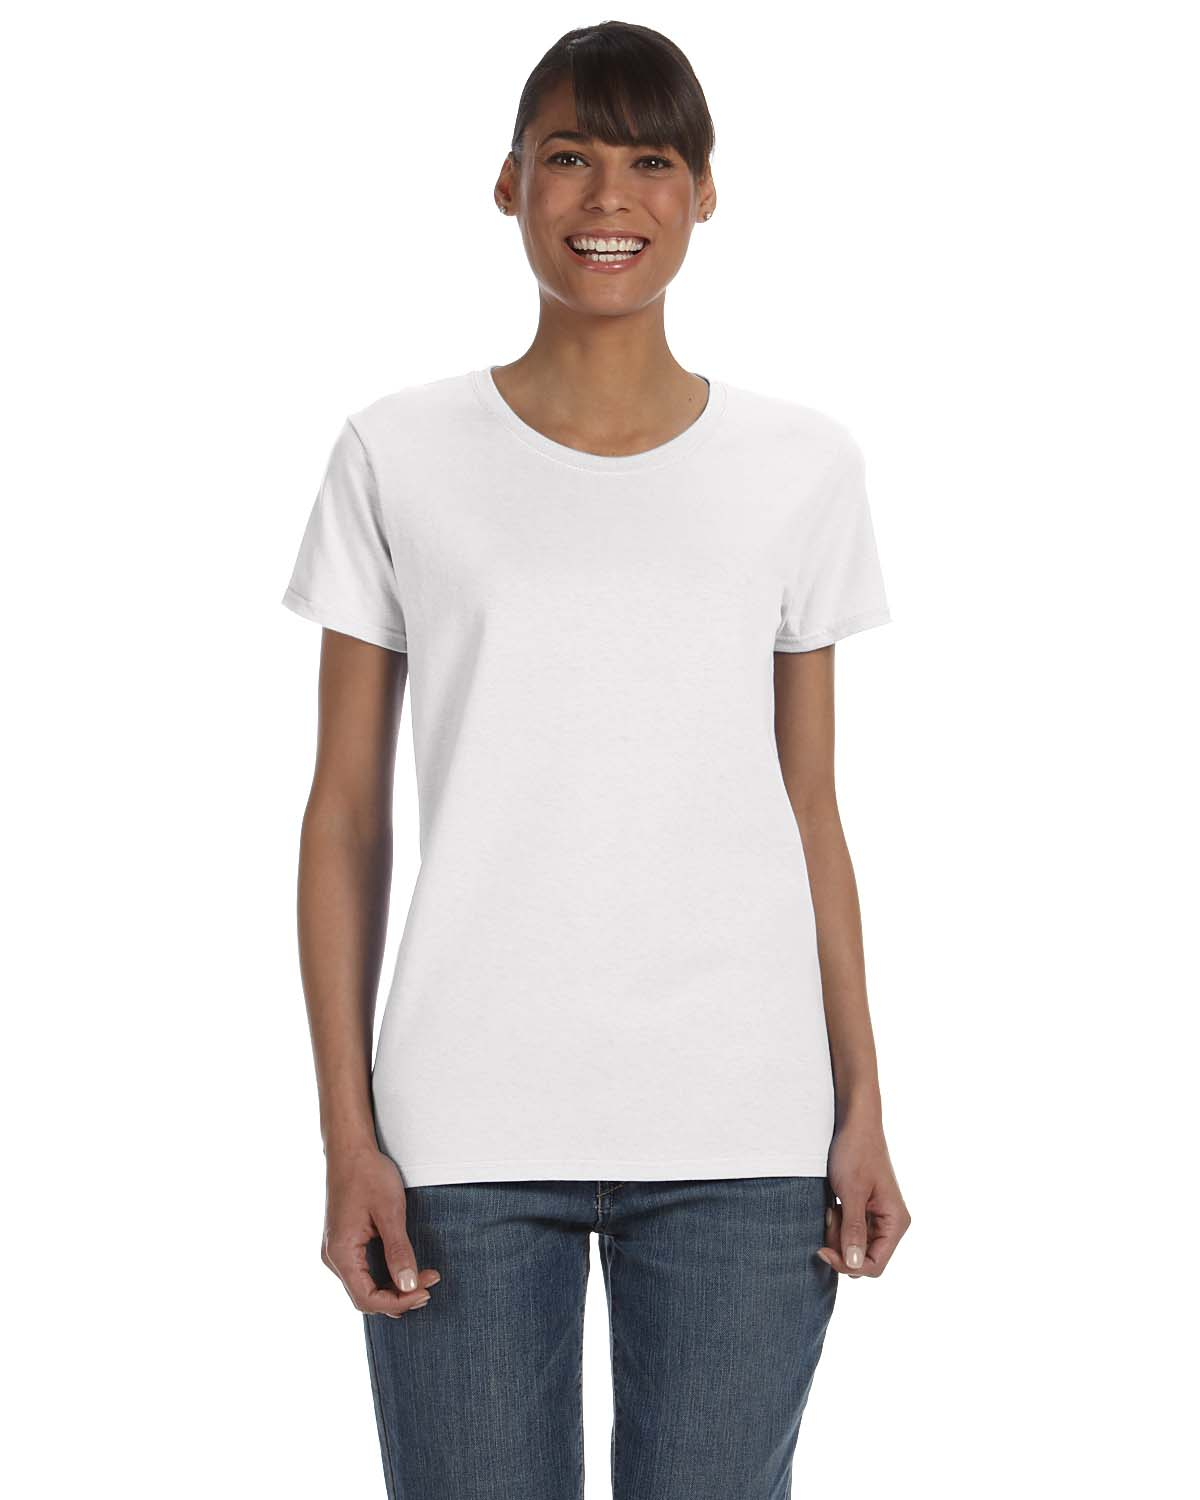 White t shirt for womens - T Shirts